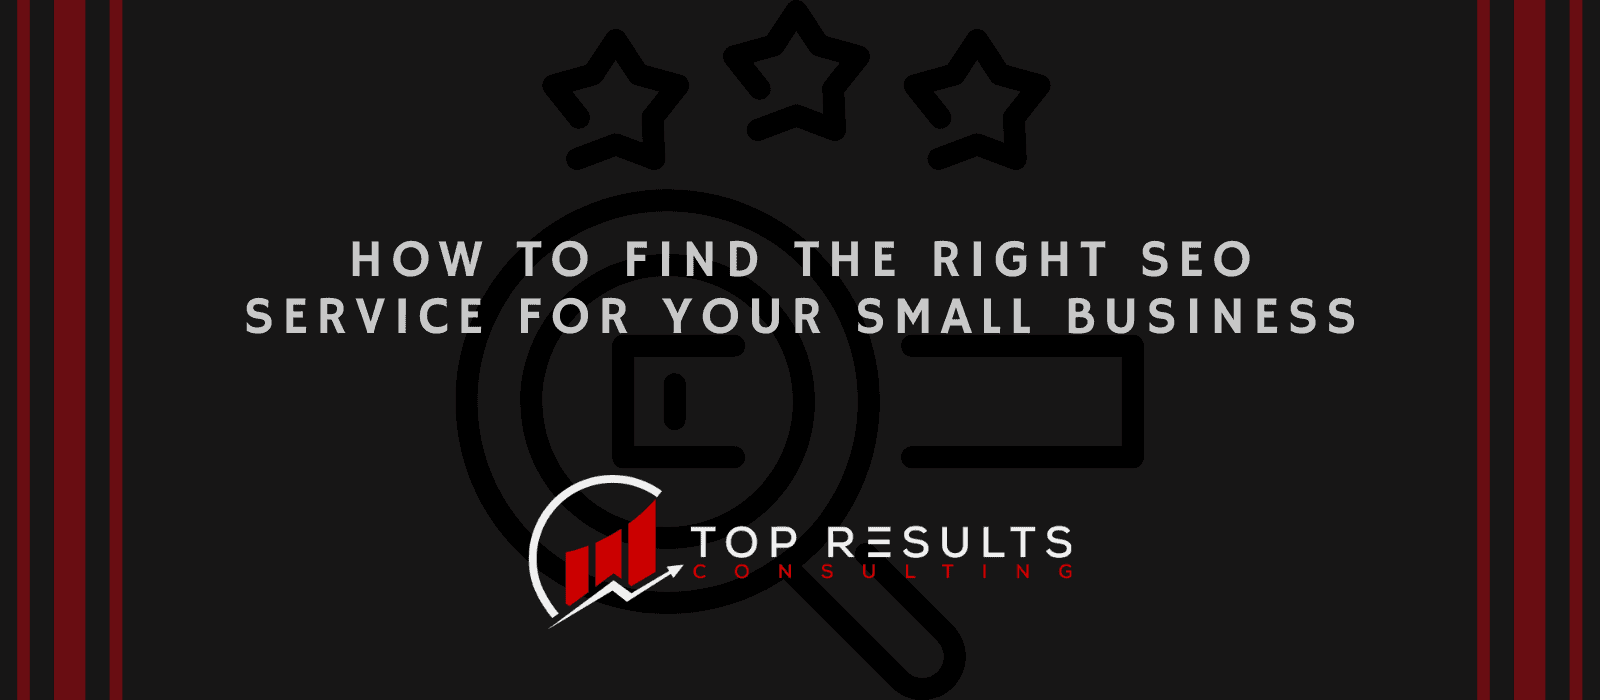 Find the Right SEO Service for Your Small Business